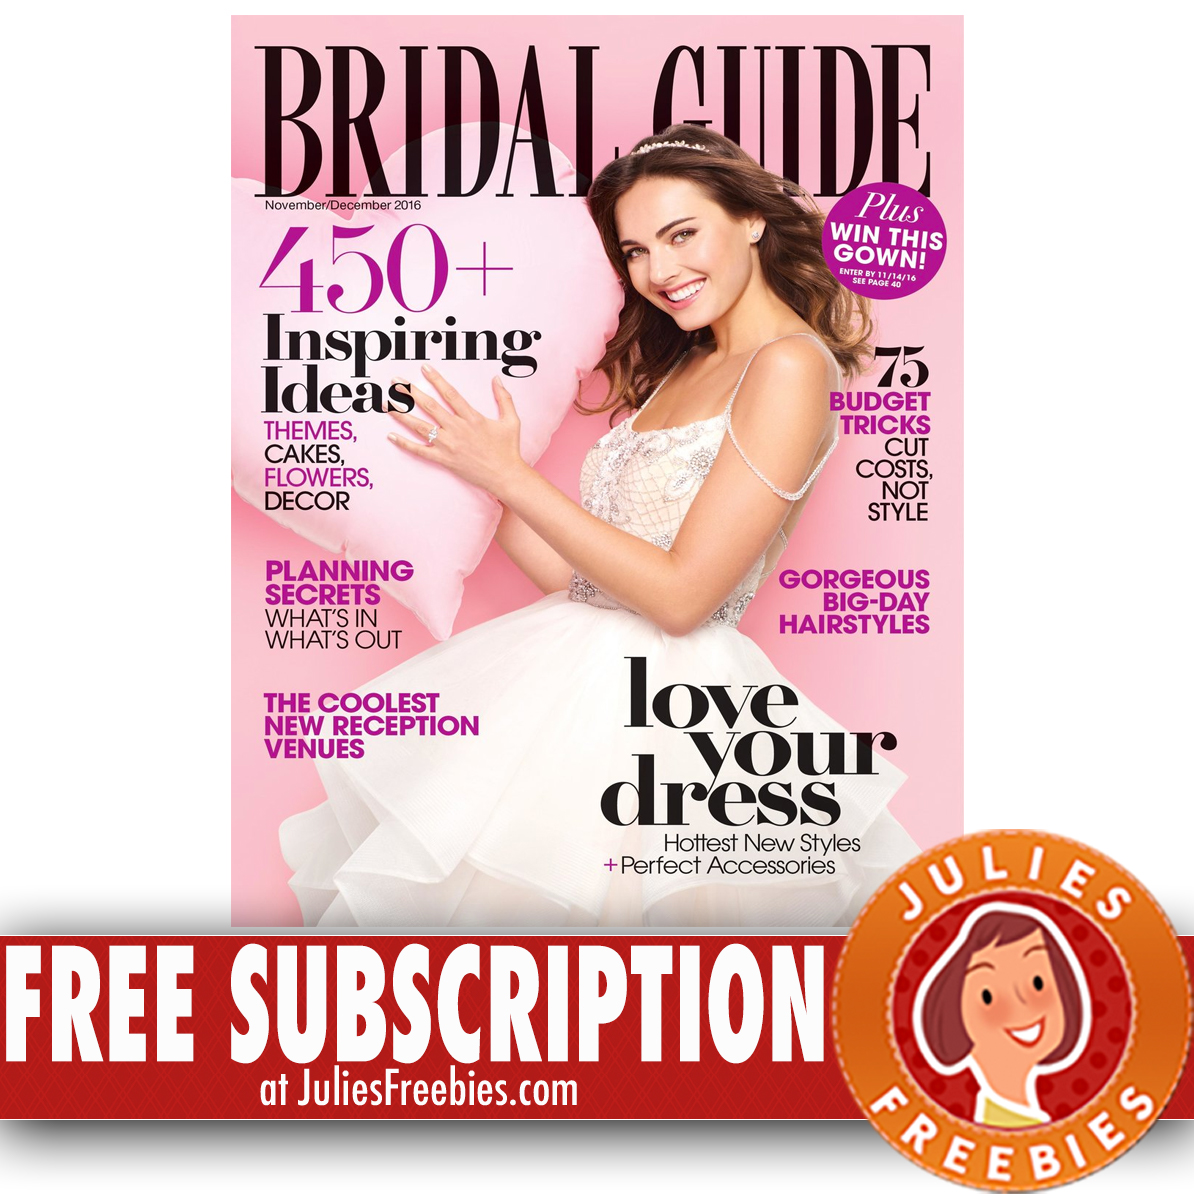 Wedding Magazine Subscriptions: Free 2 Year Subscription To Bridal Guide Magazine